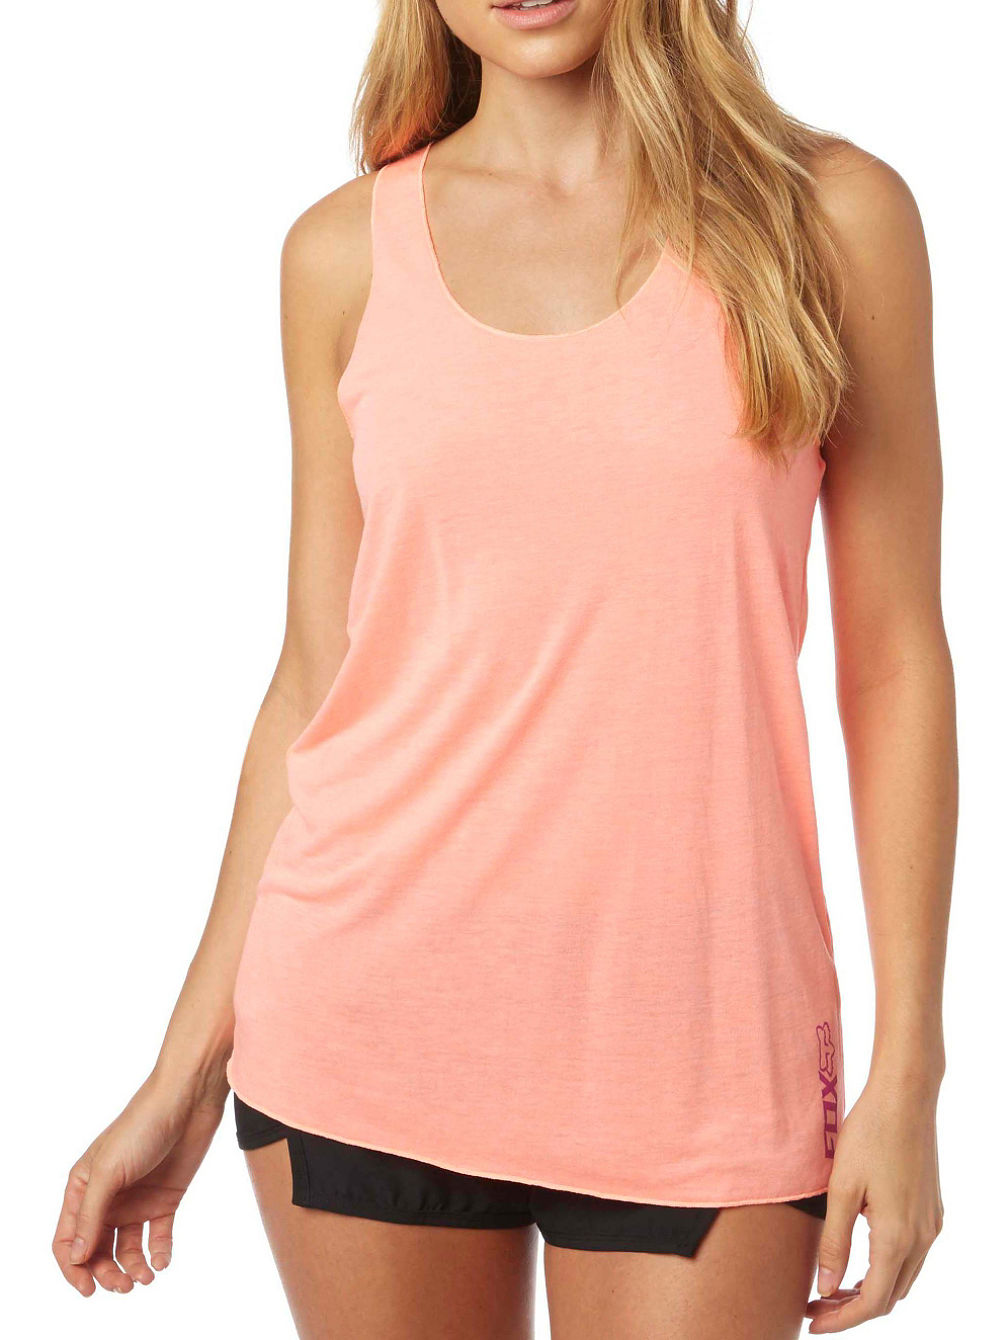 Miss Clean Racer Tank Top